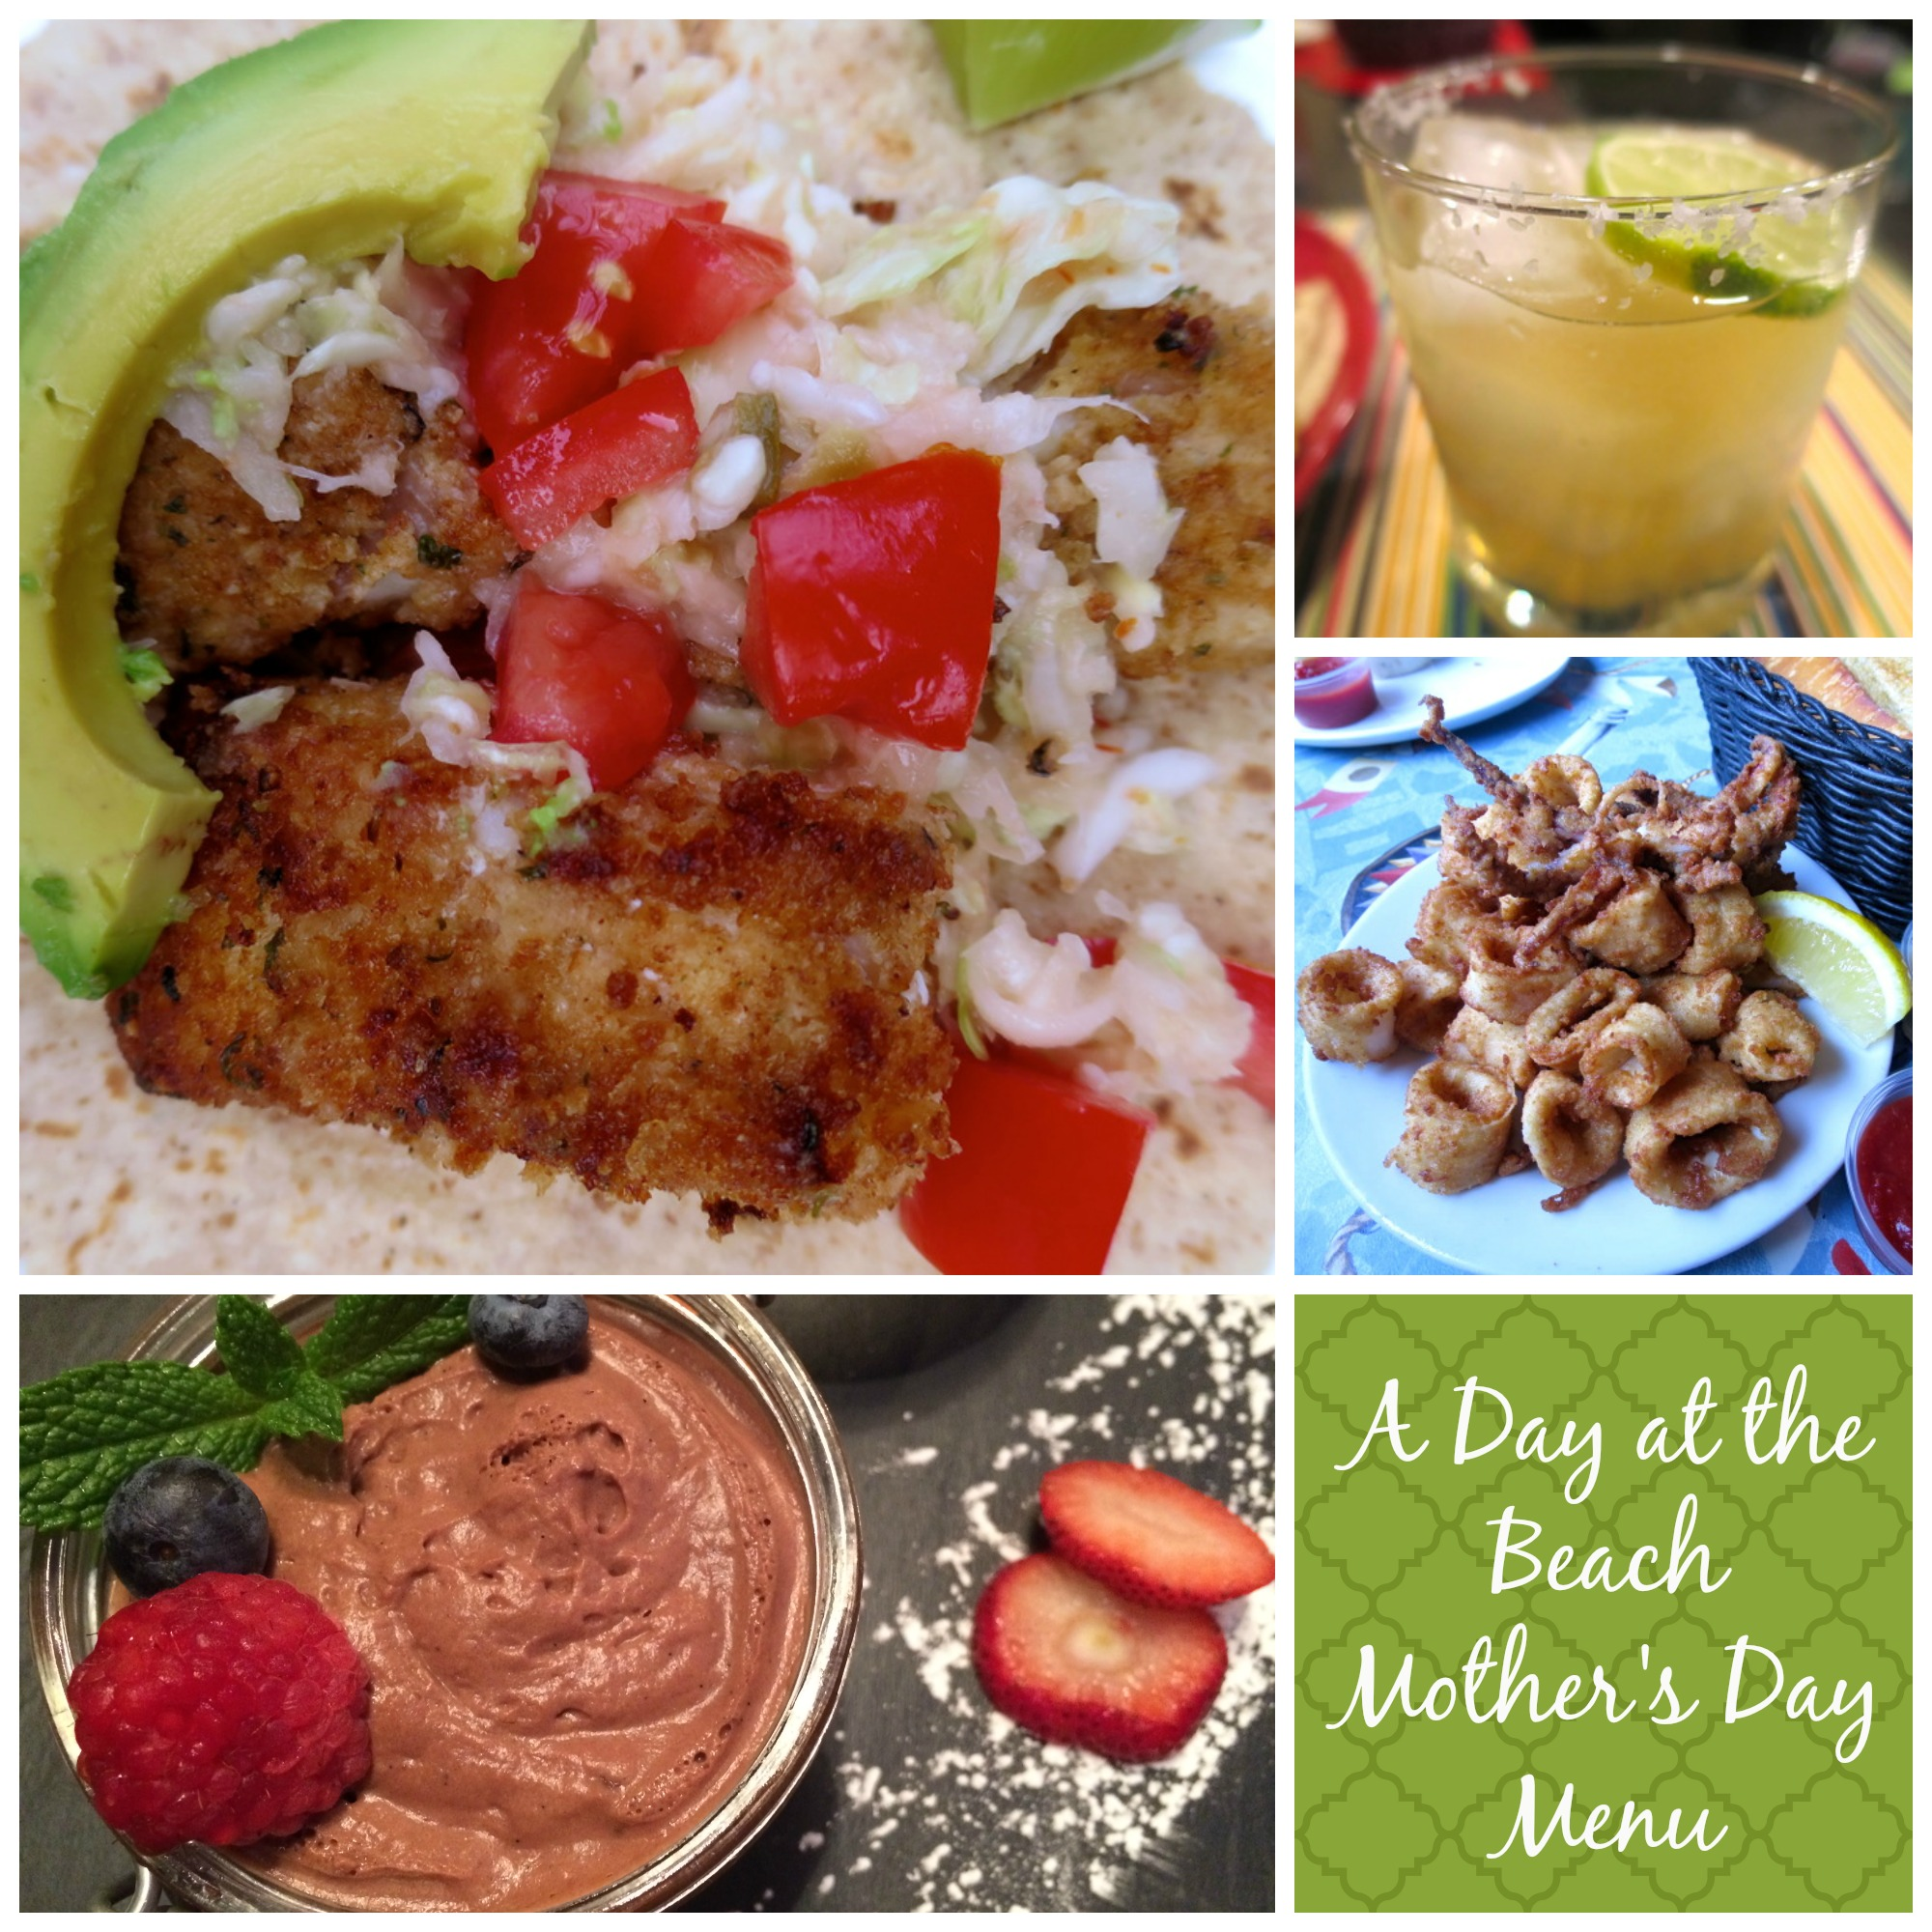 A Day at the Beach Mothers Day Menu